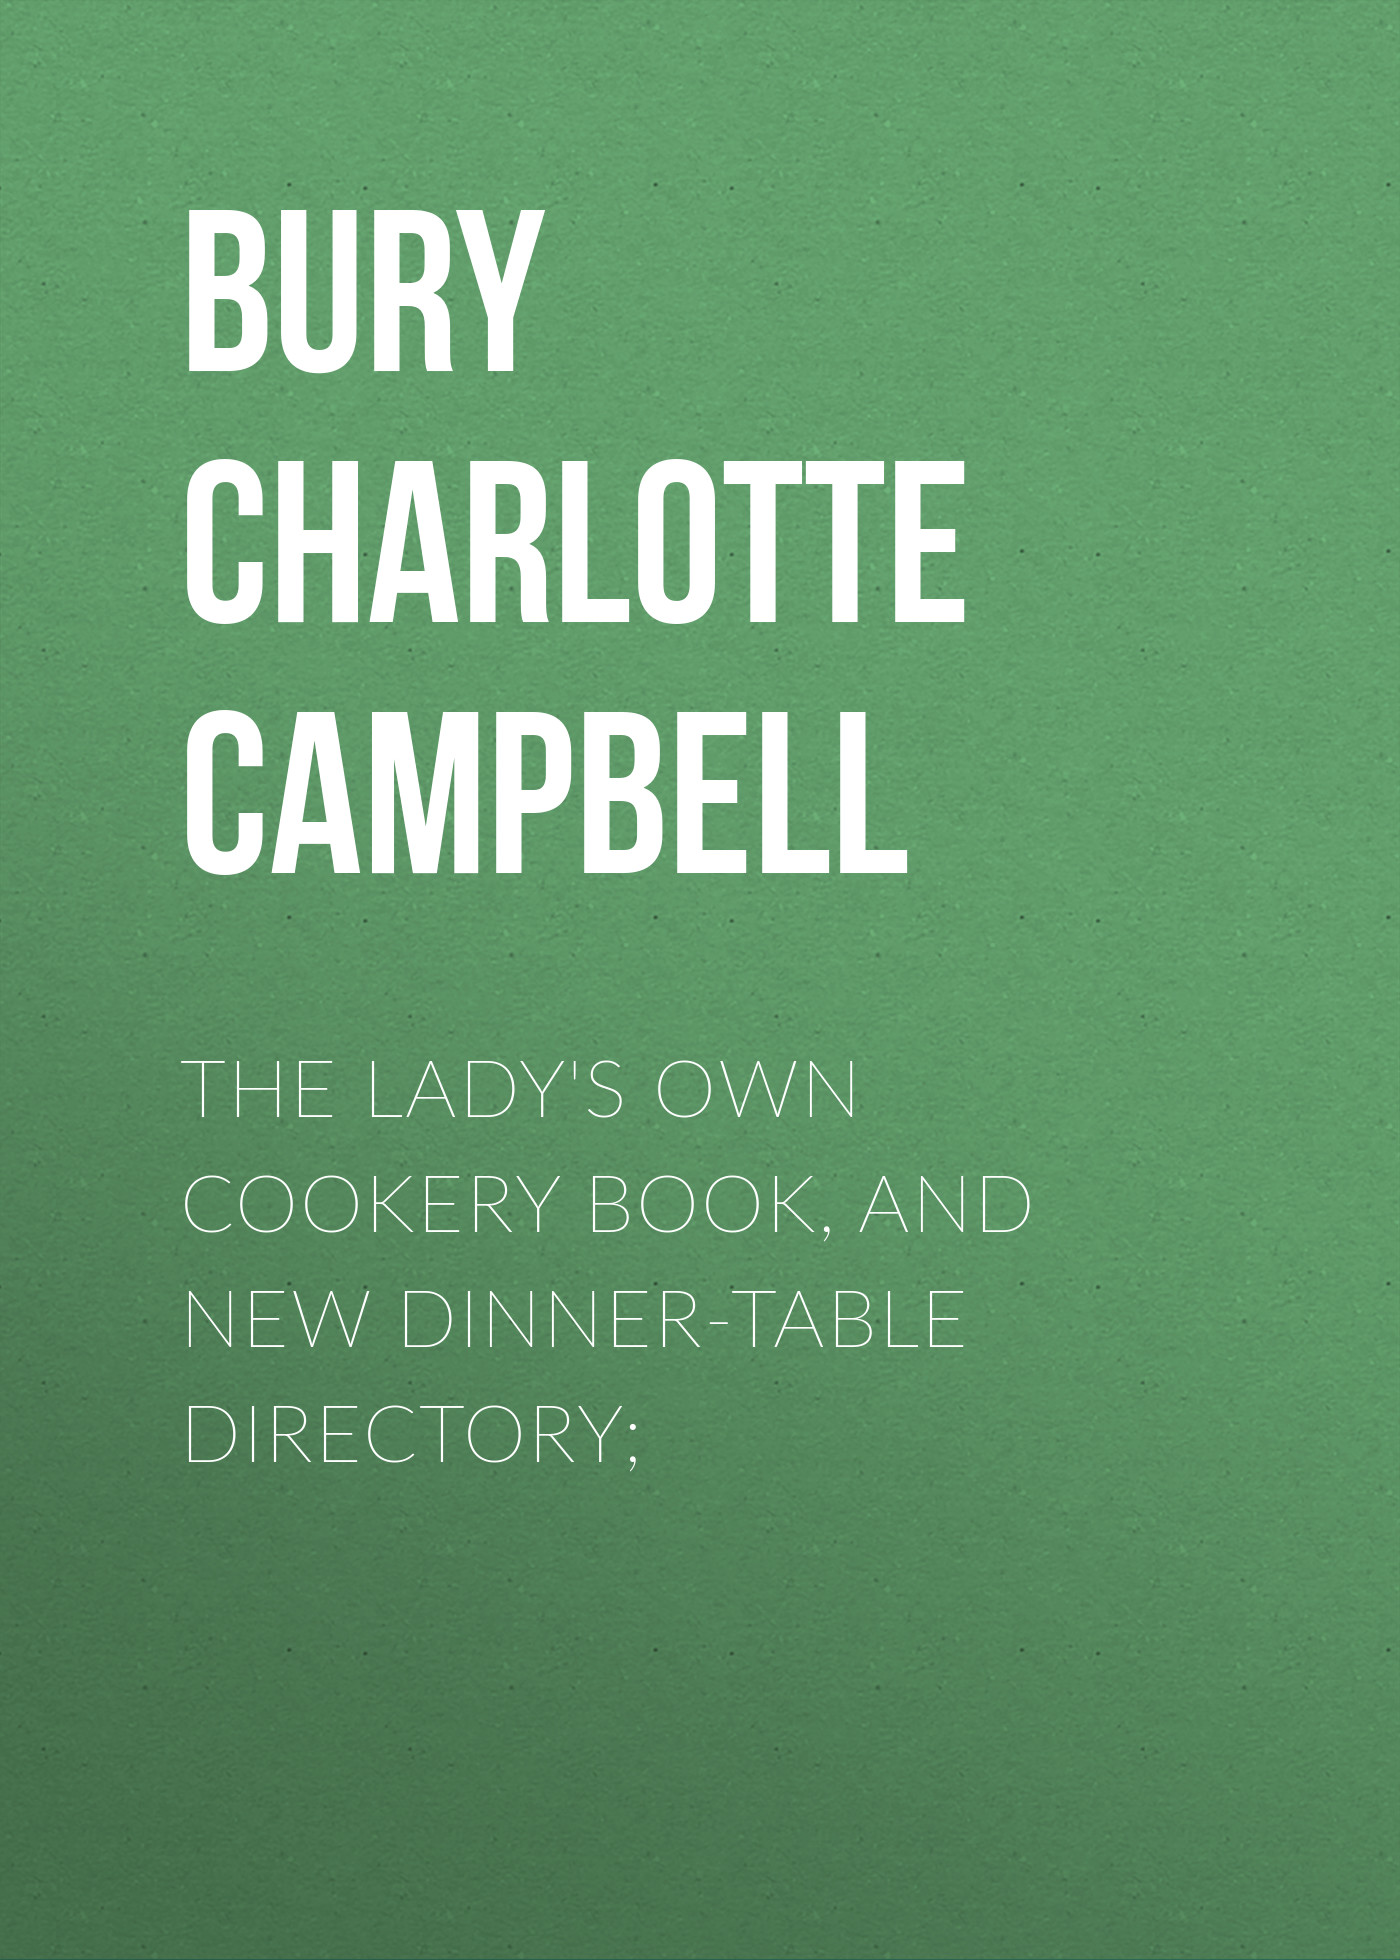 Bury Charlotte Campbell The Lady's Own Cookery Book, and New Dinner-Table Directory; the london directory